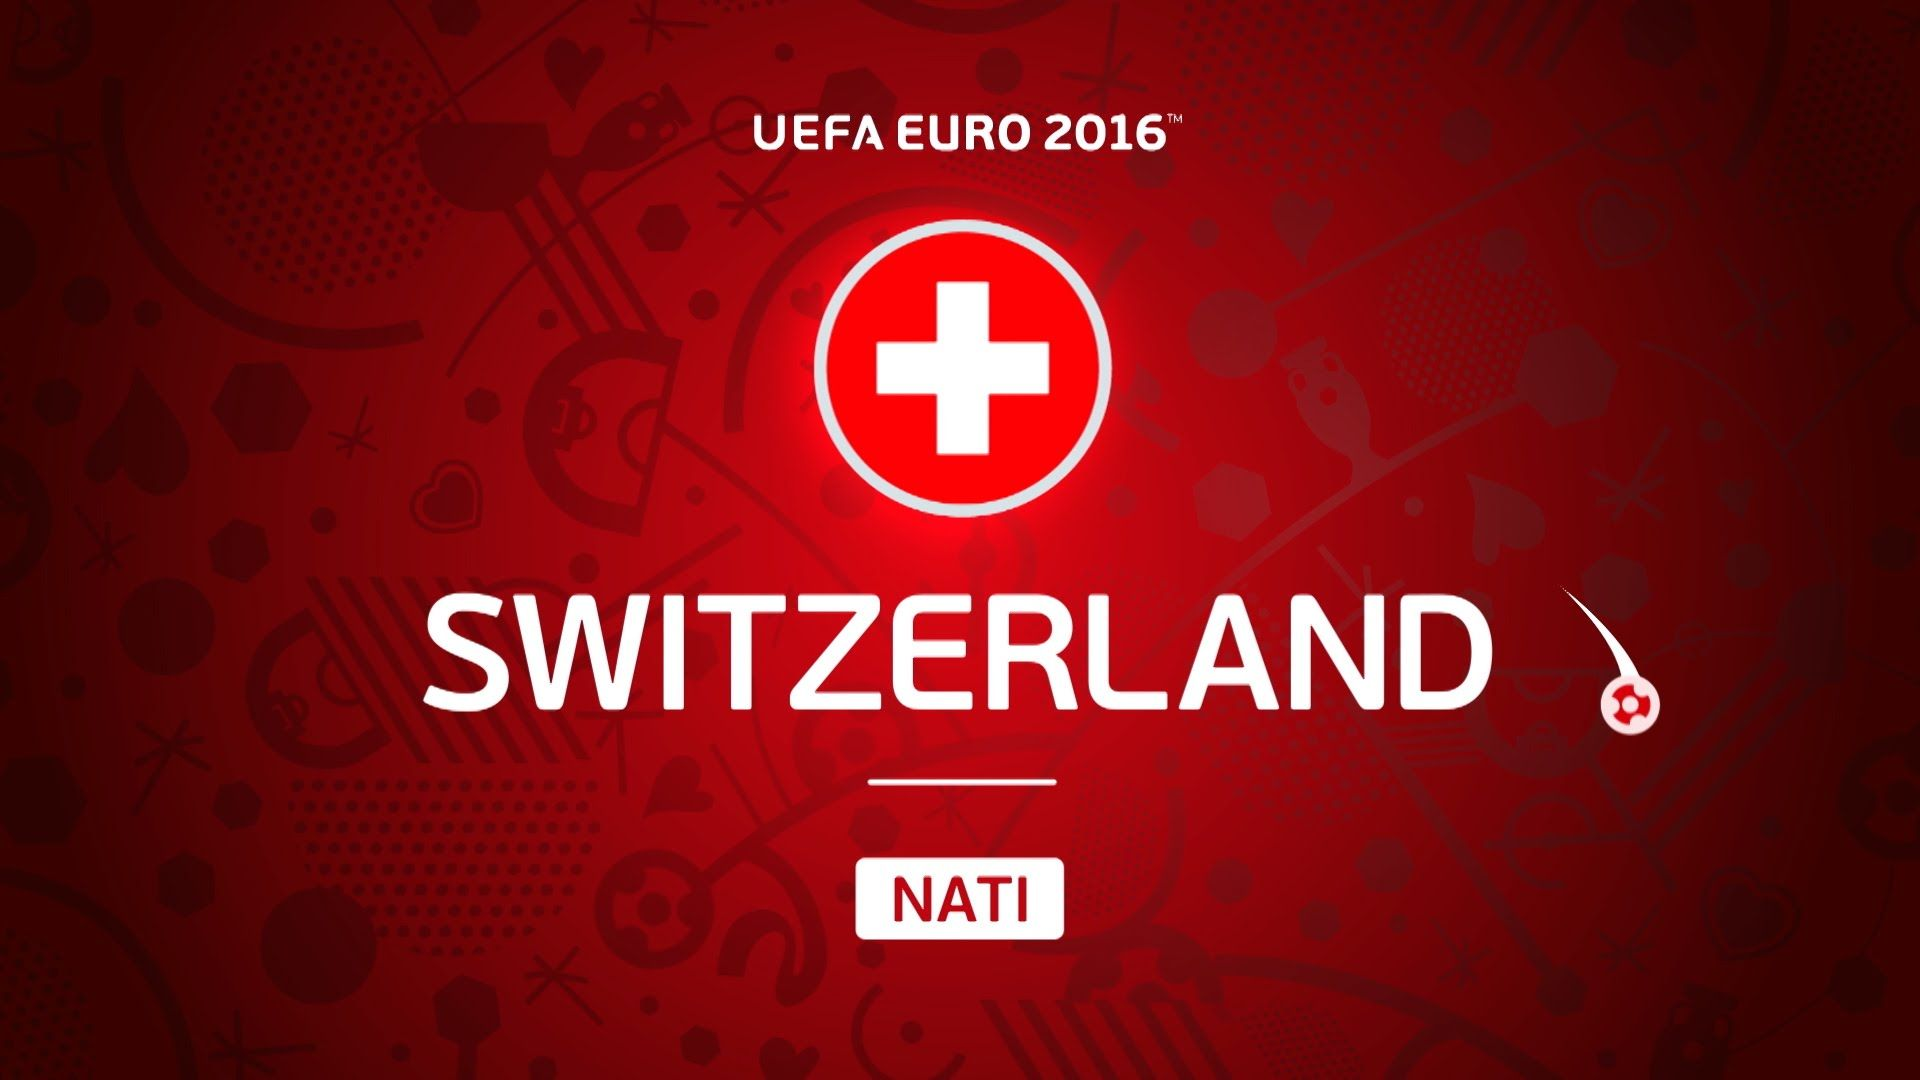 Switzerland at UEFA EURO 2016 in 30 seconds